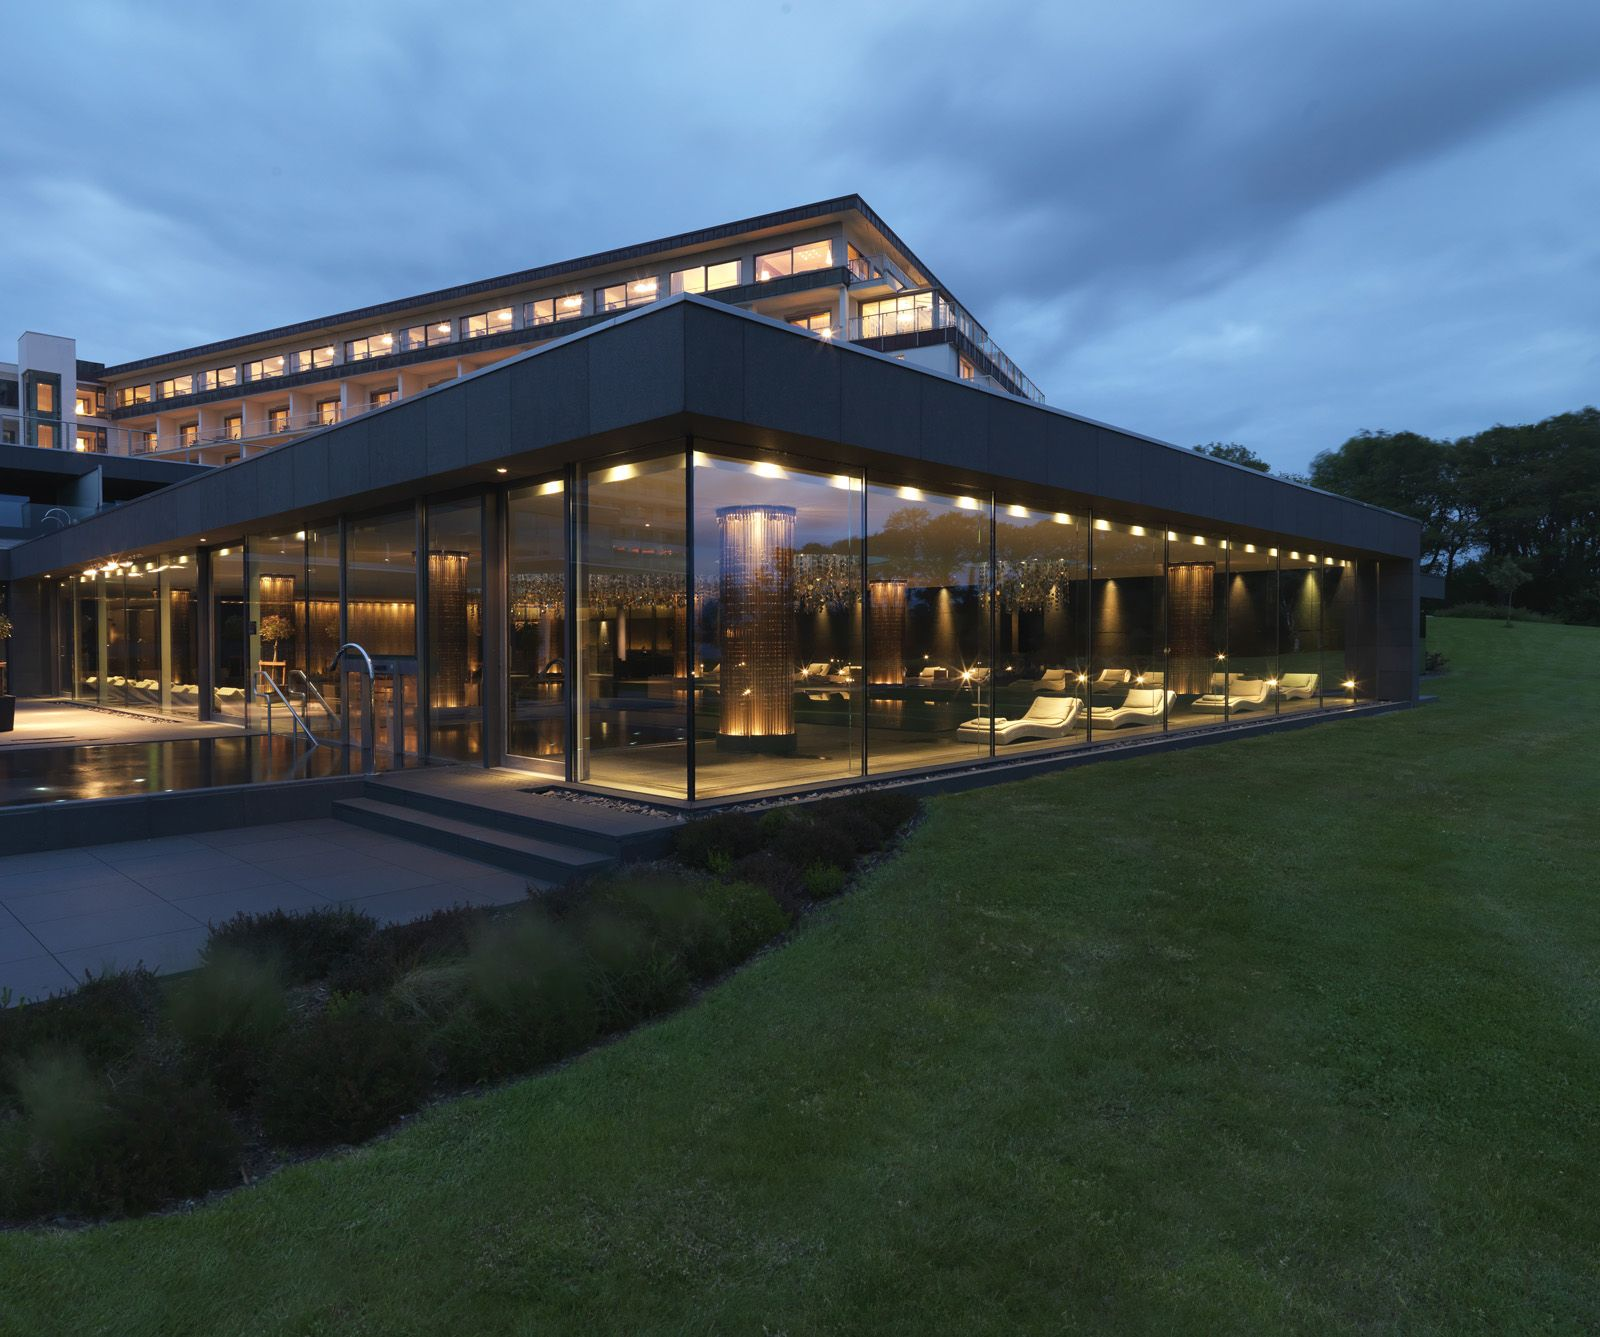 Luxury 5 Star Europe Hotel Resort In Killarney Co Kerry Ireland View Our Image Gallery